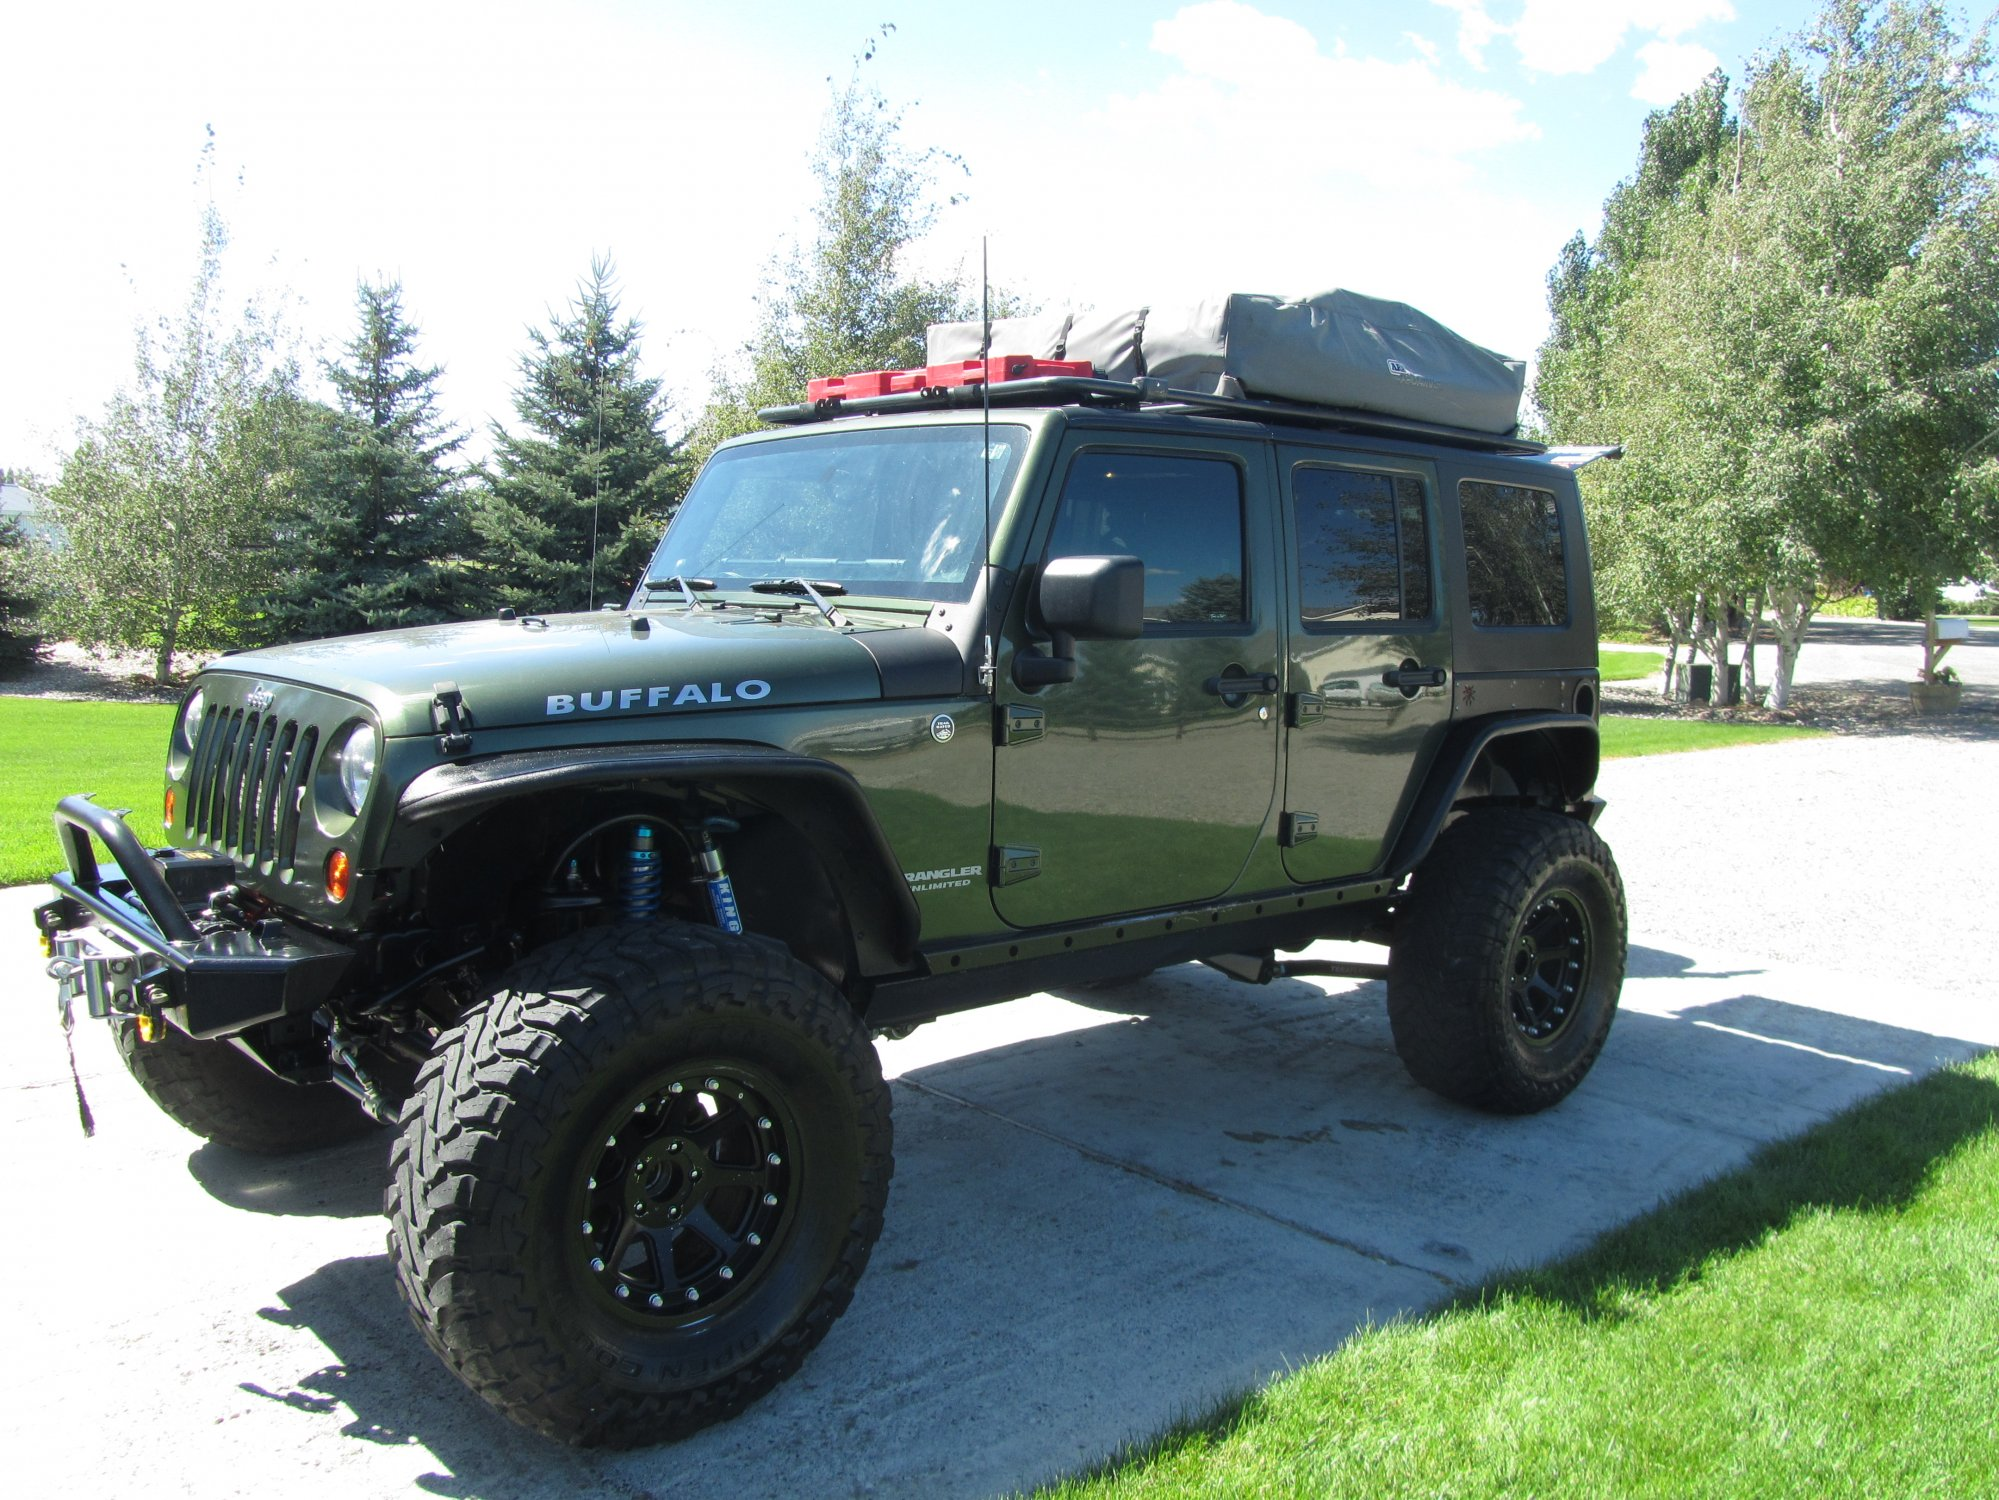 2008 jeep wrangler rubicon unlimited for sale 38 000 expedition portal. Black Bedroom Furniture Sets. Home Design Ideas